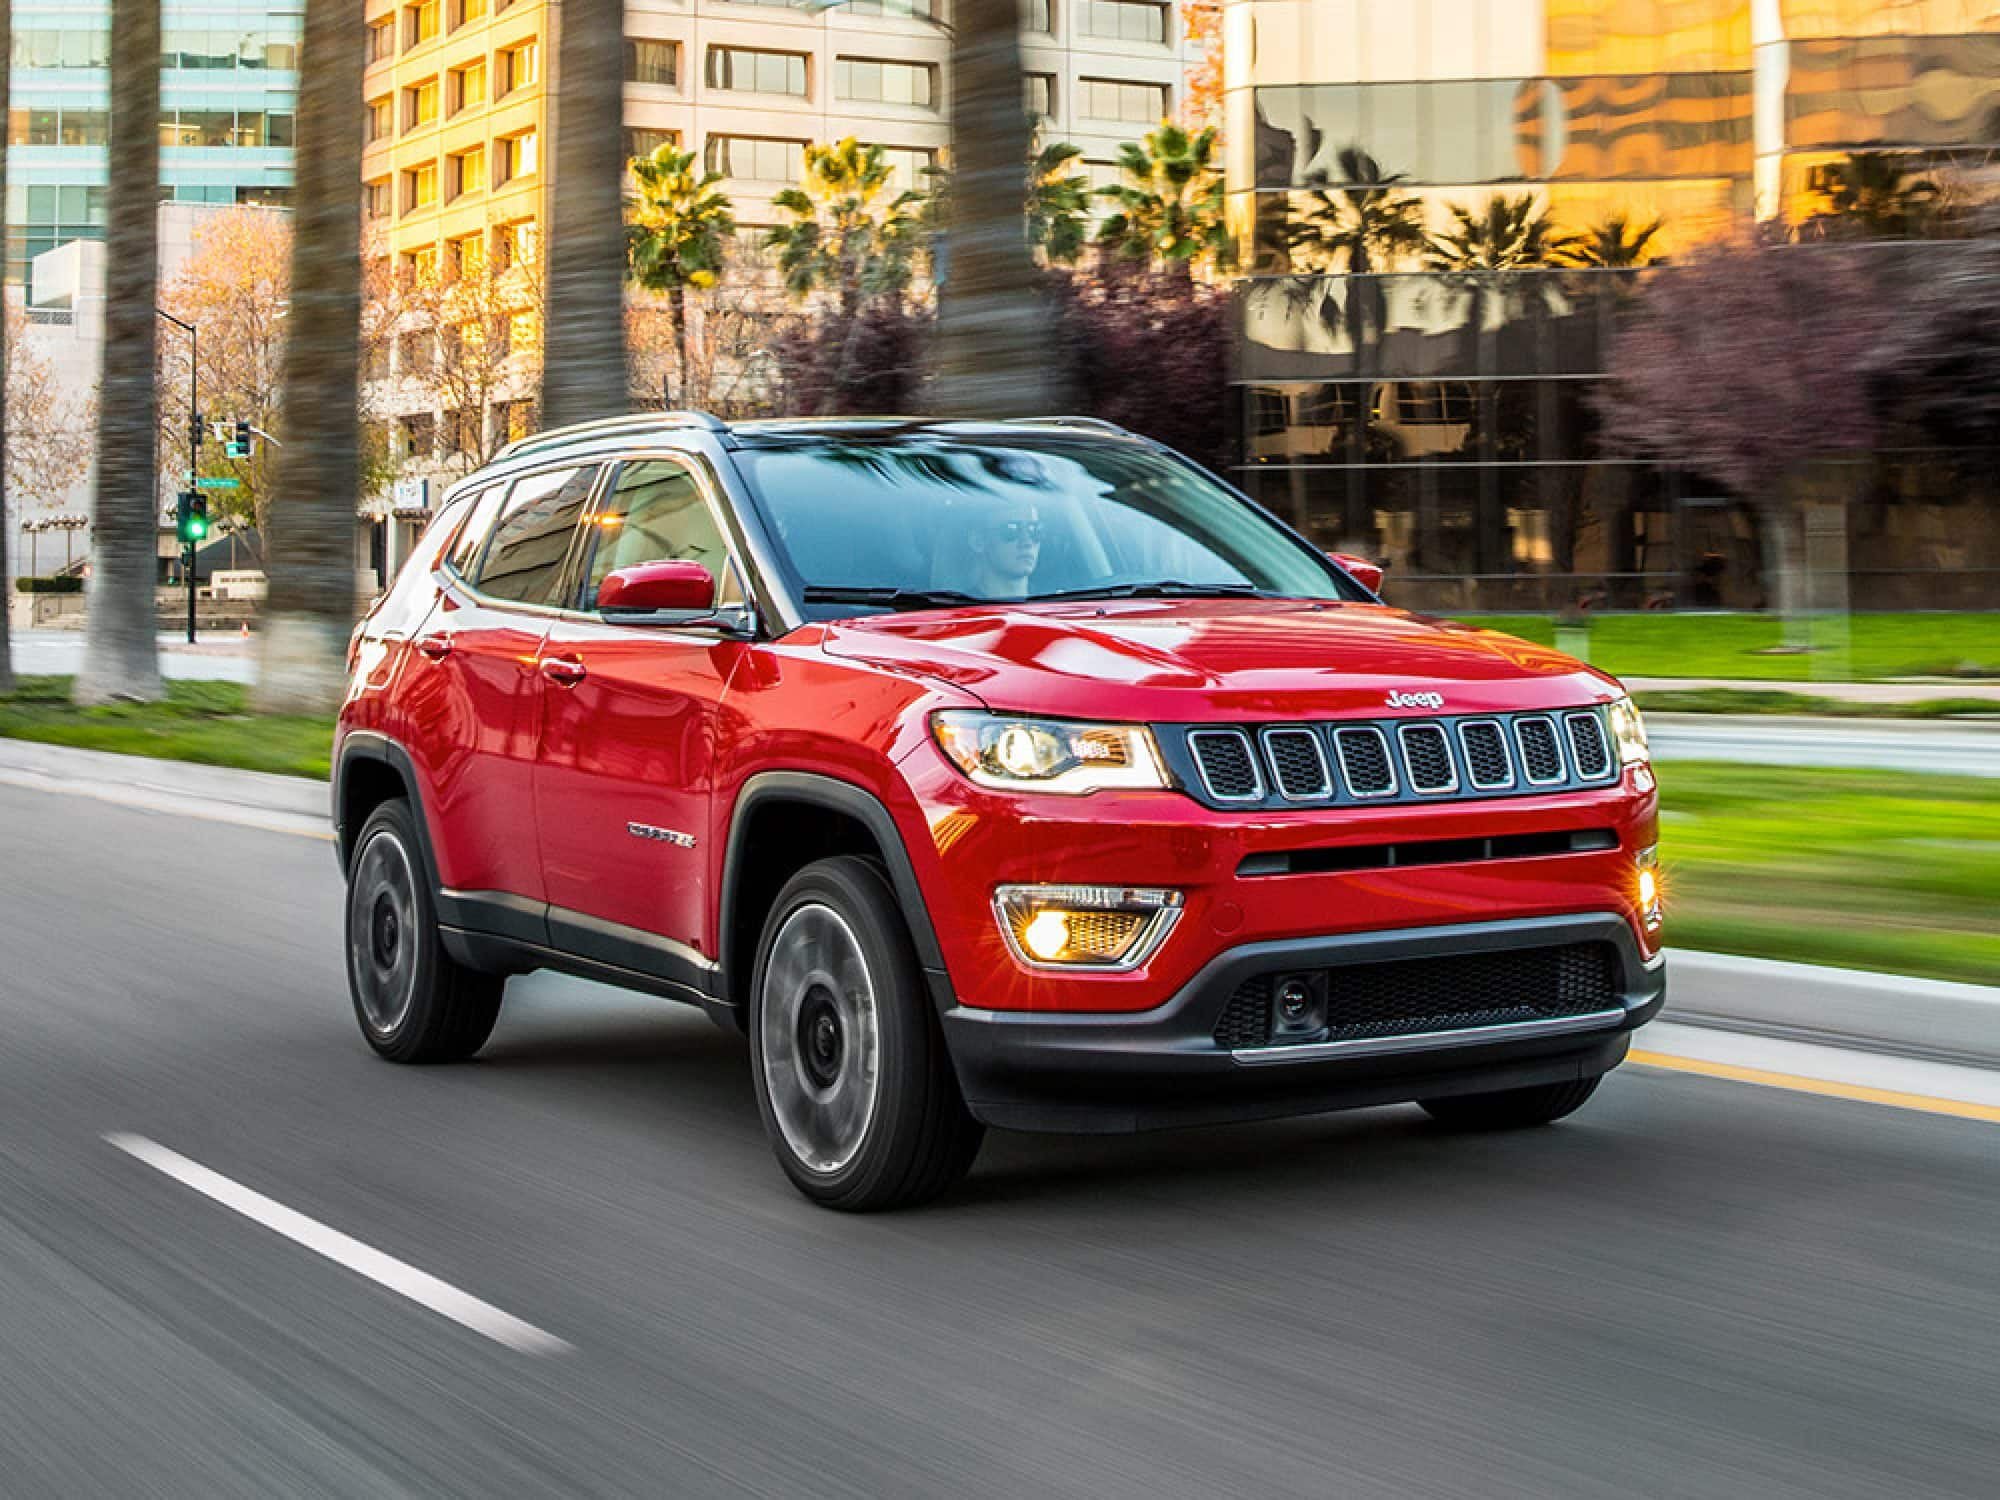 Chrysler Of Culpeper >> Used Jeep Compass for sale near Charlottesville, Fredericksburg, Culpeper, VA